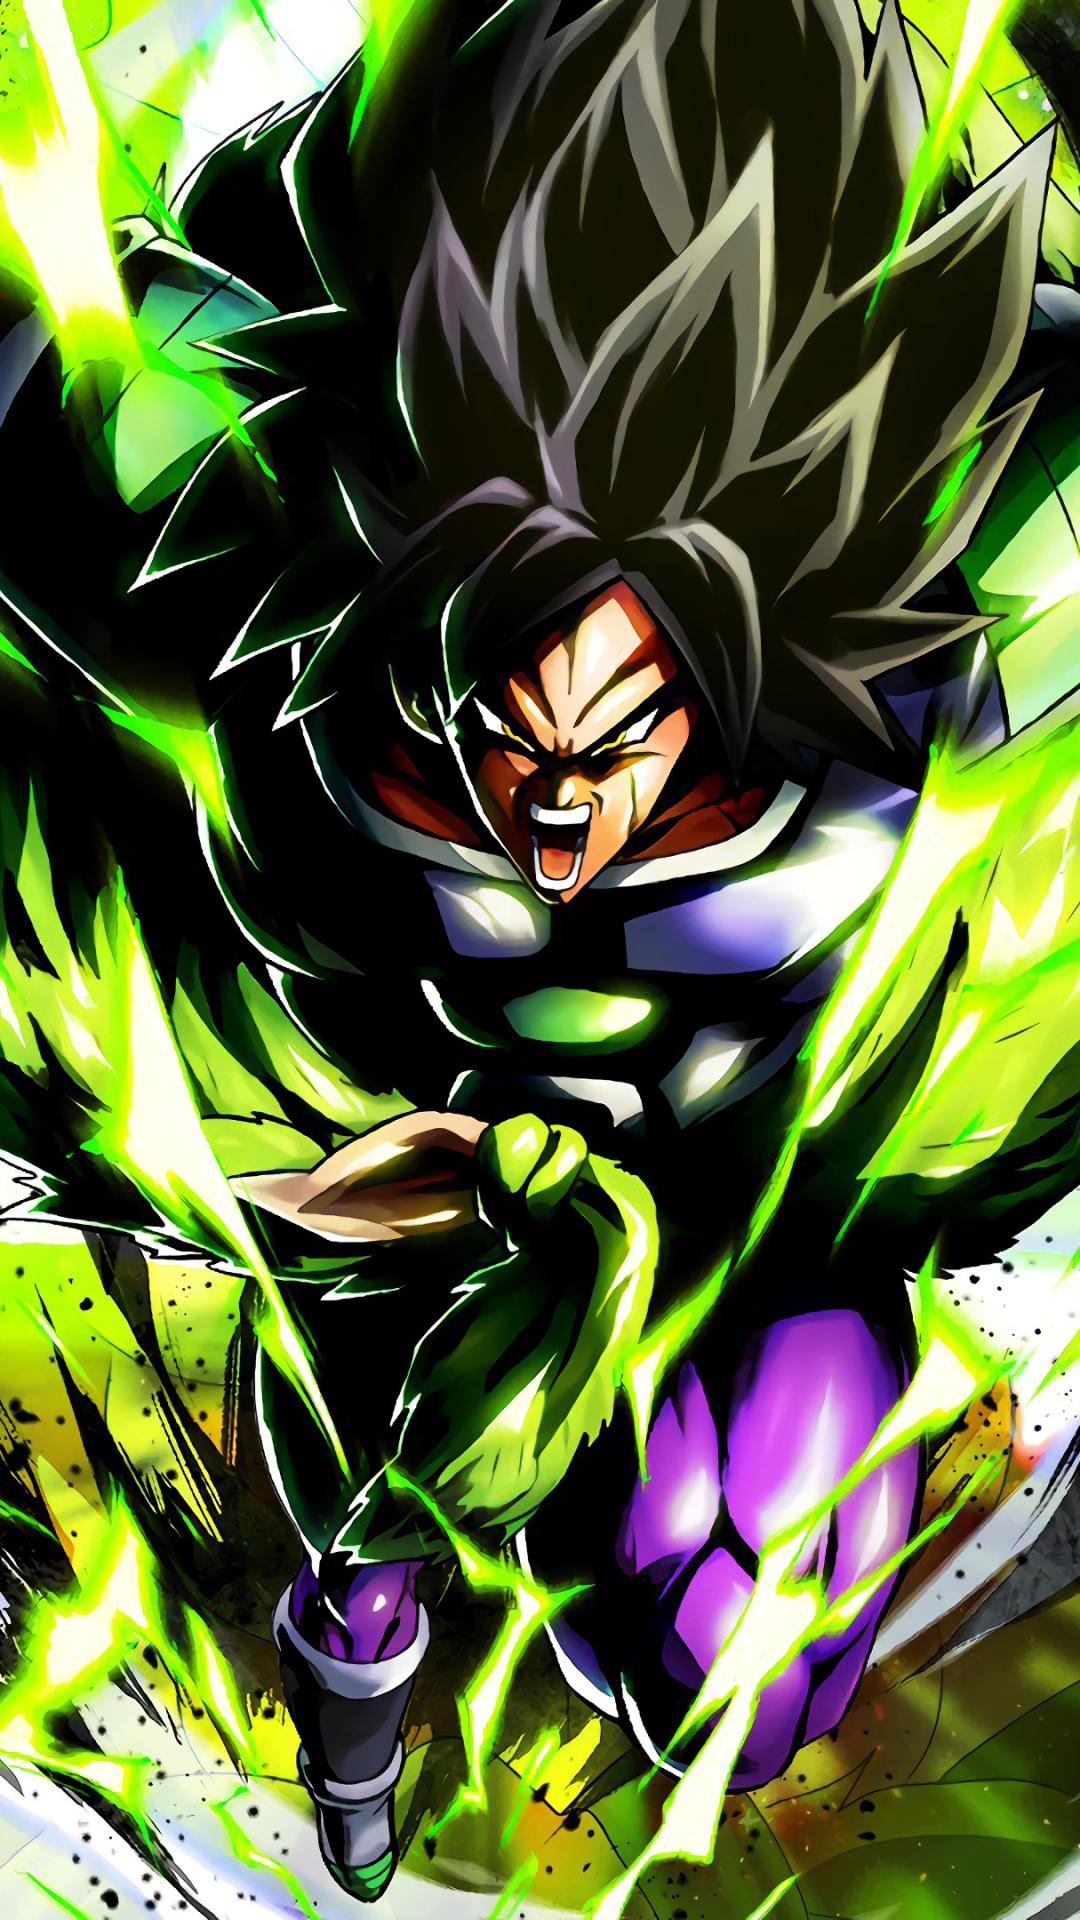 Dbs Broly Wallpaper Posted By Christopher Sellers